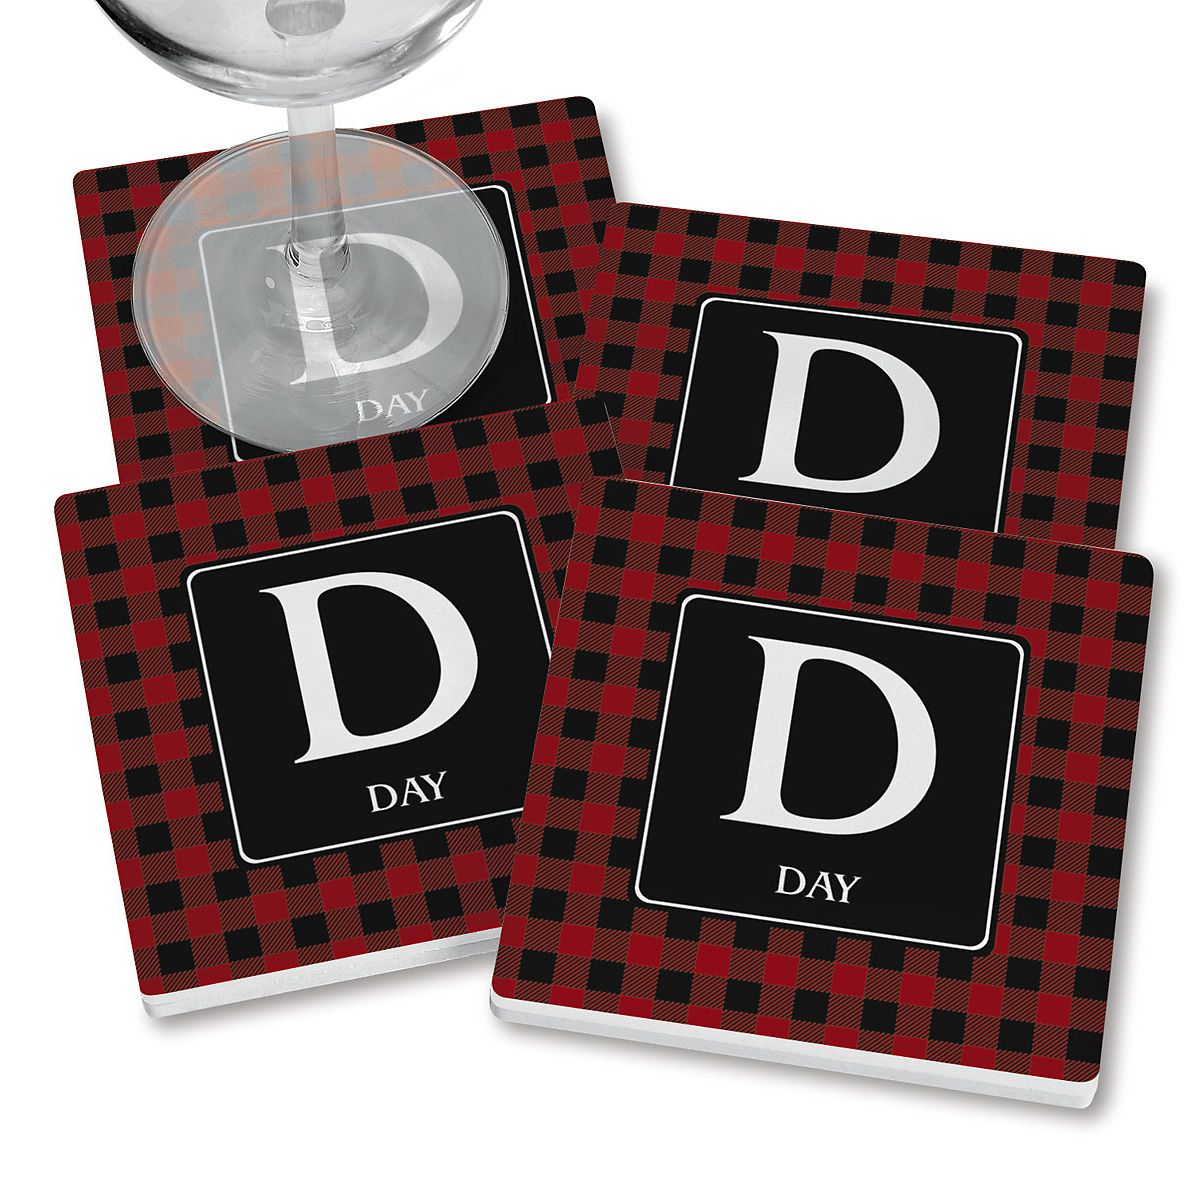 Red Plaid Personalized Ceramic Coasters